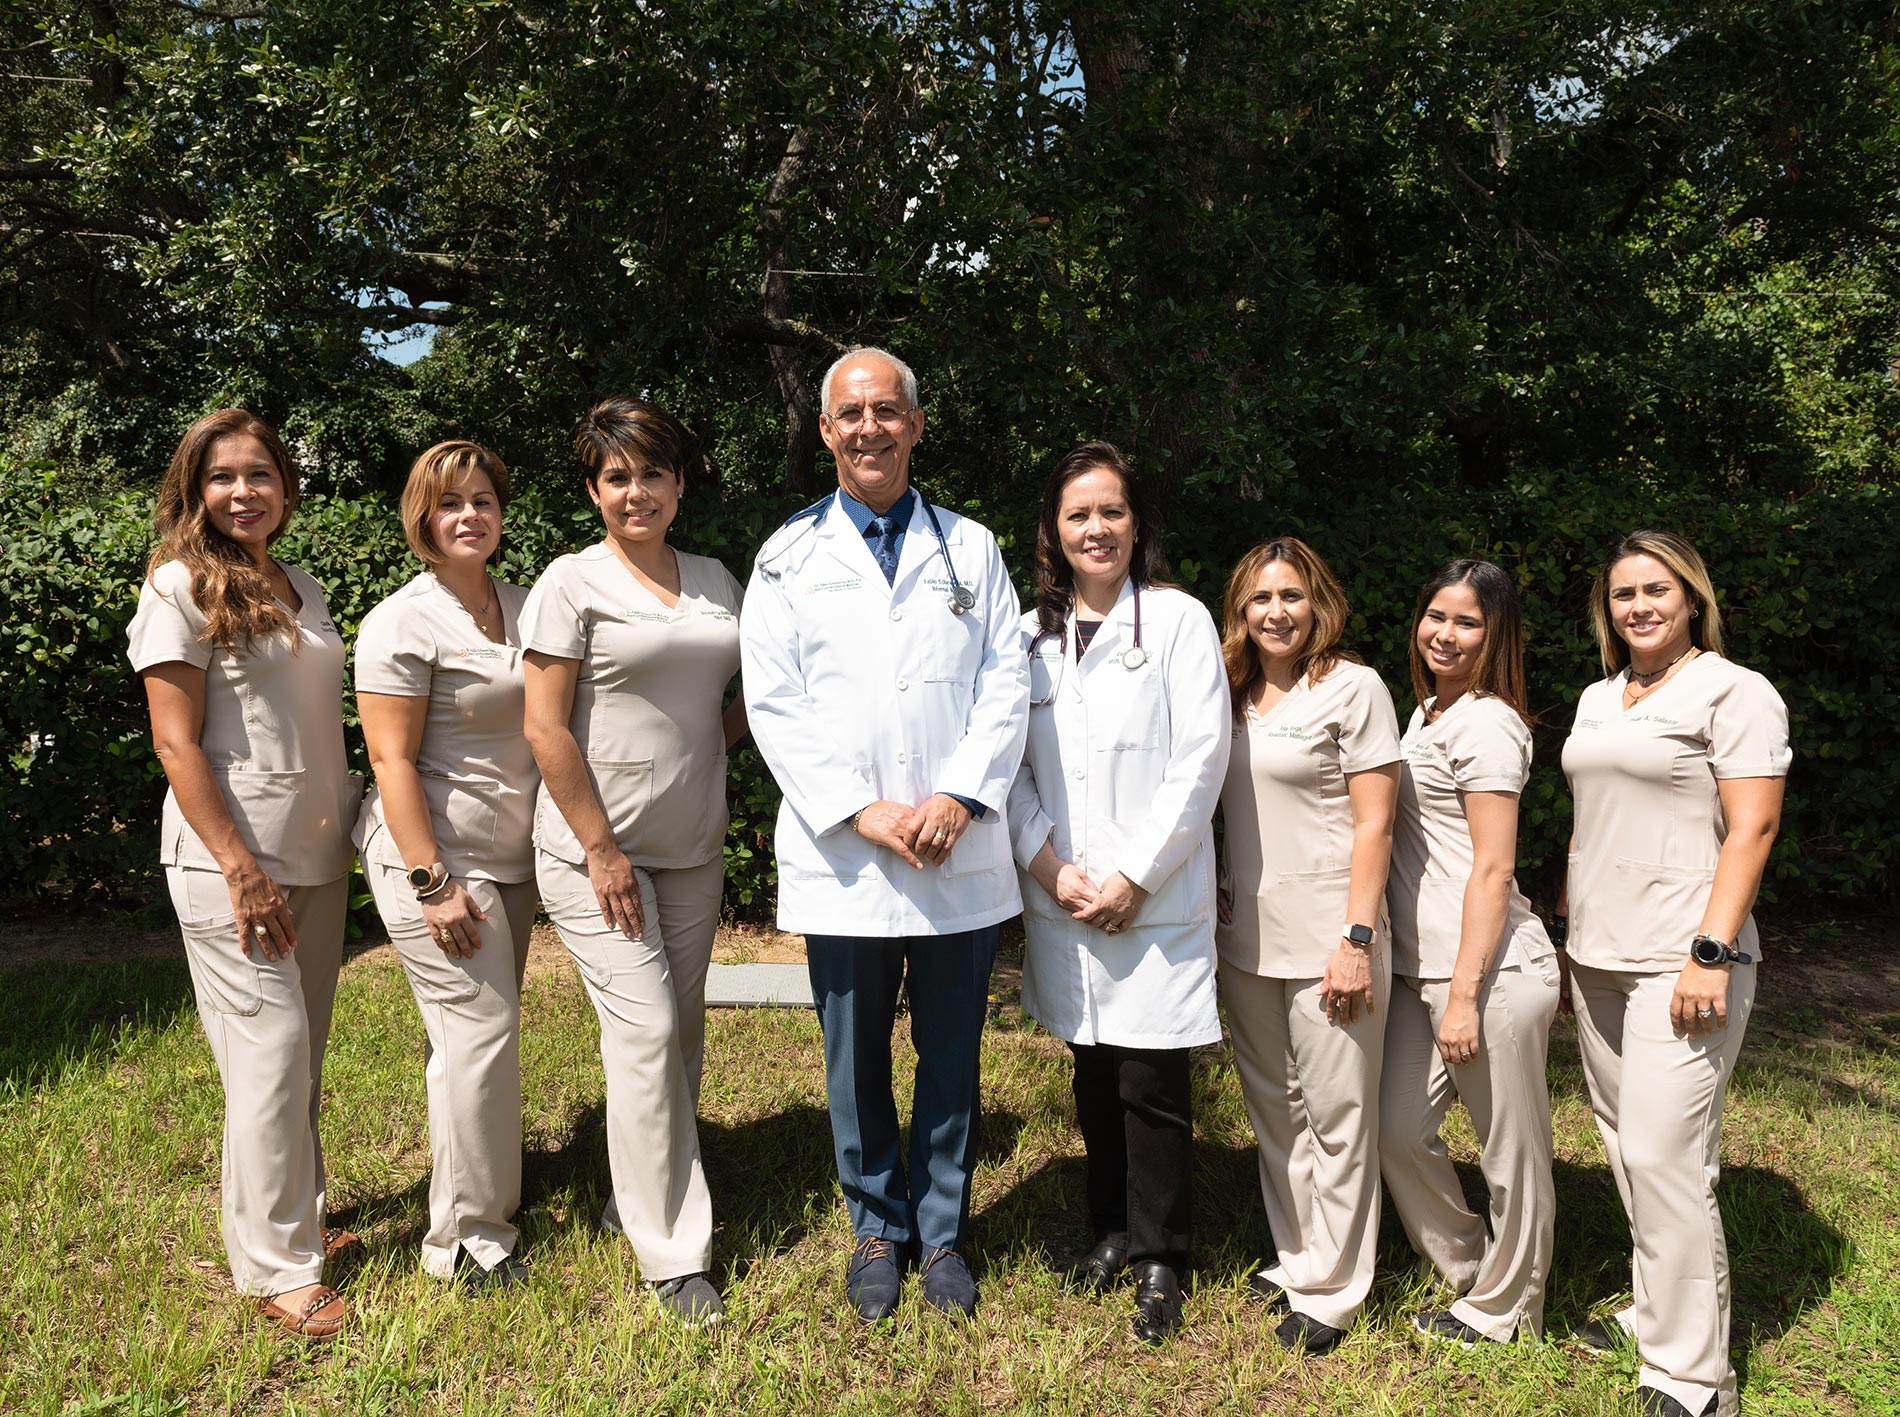 Dr. Echavarria and staff strive to meet your expectations by providing the best possible quality care to their patients, putting your needs and comfort first.